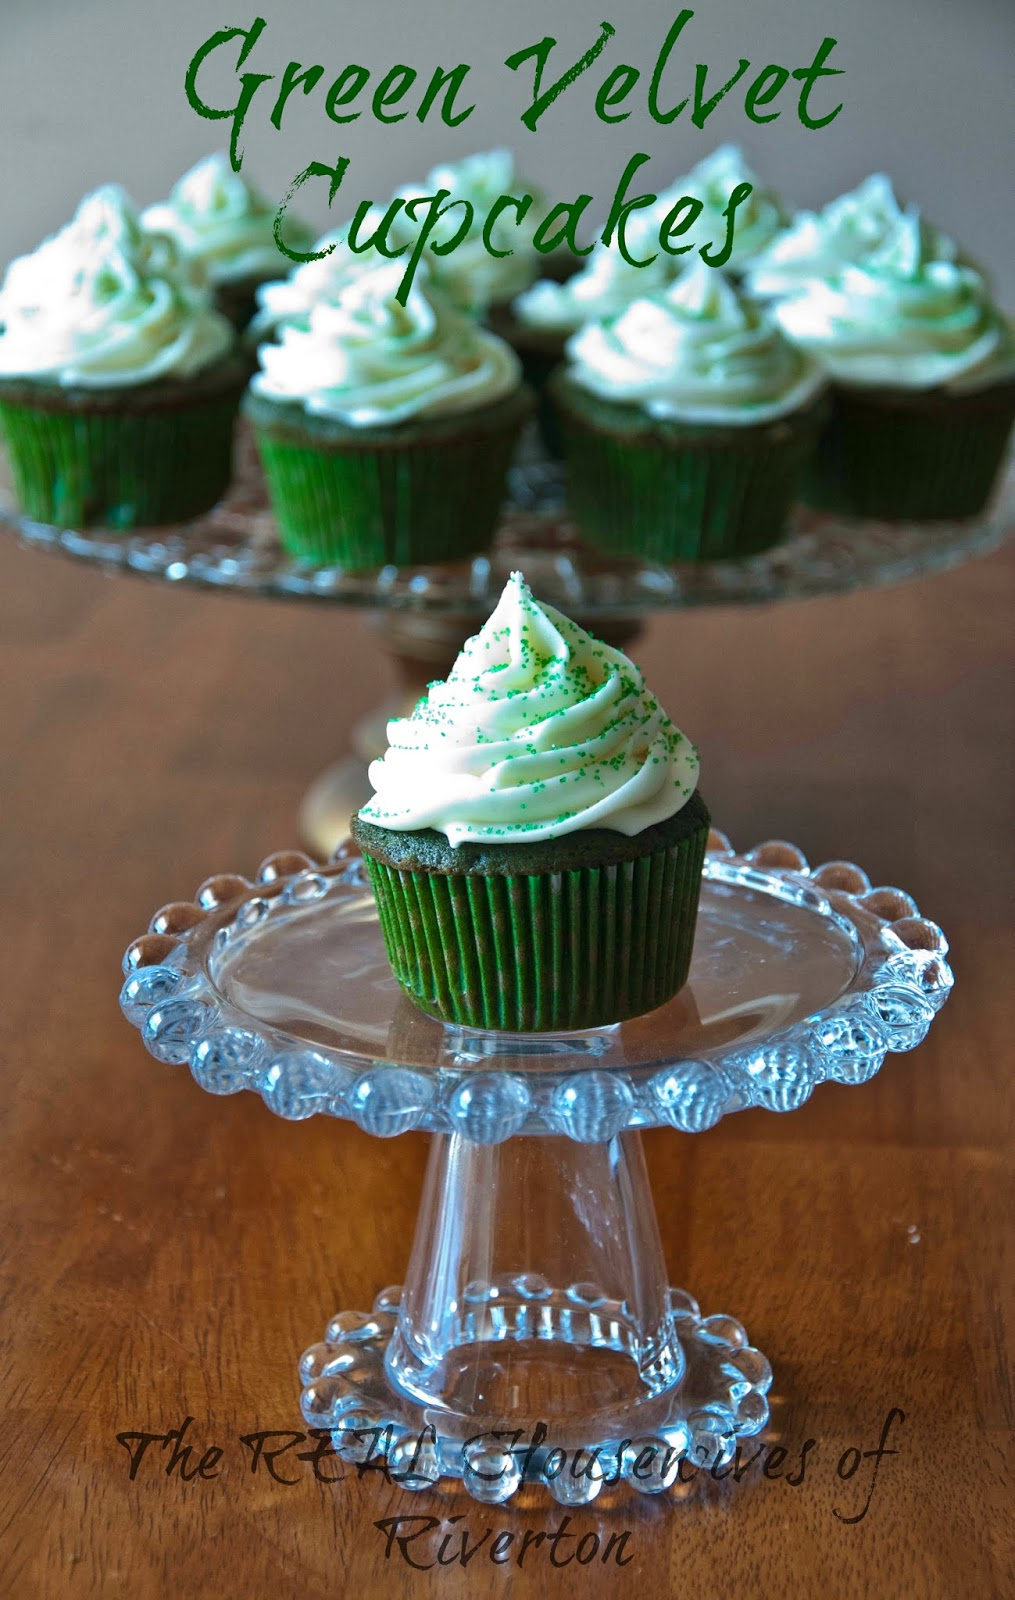 Green Velvet Cupcakes from The Housewives of Riverton